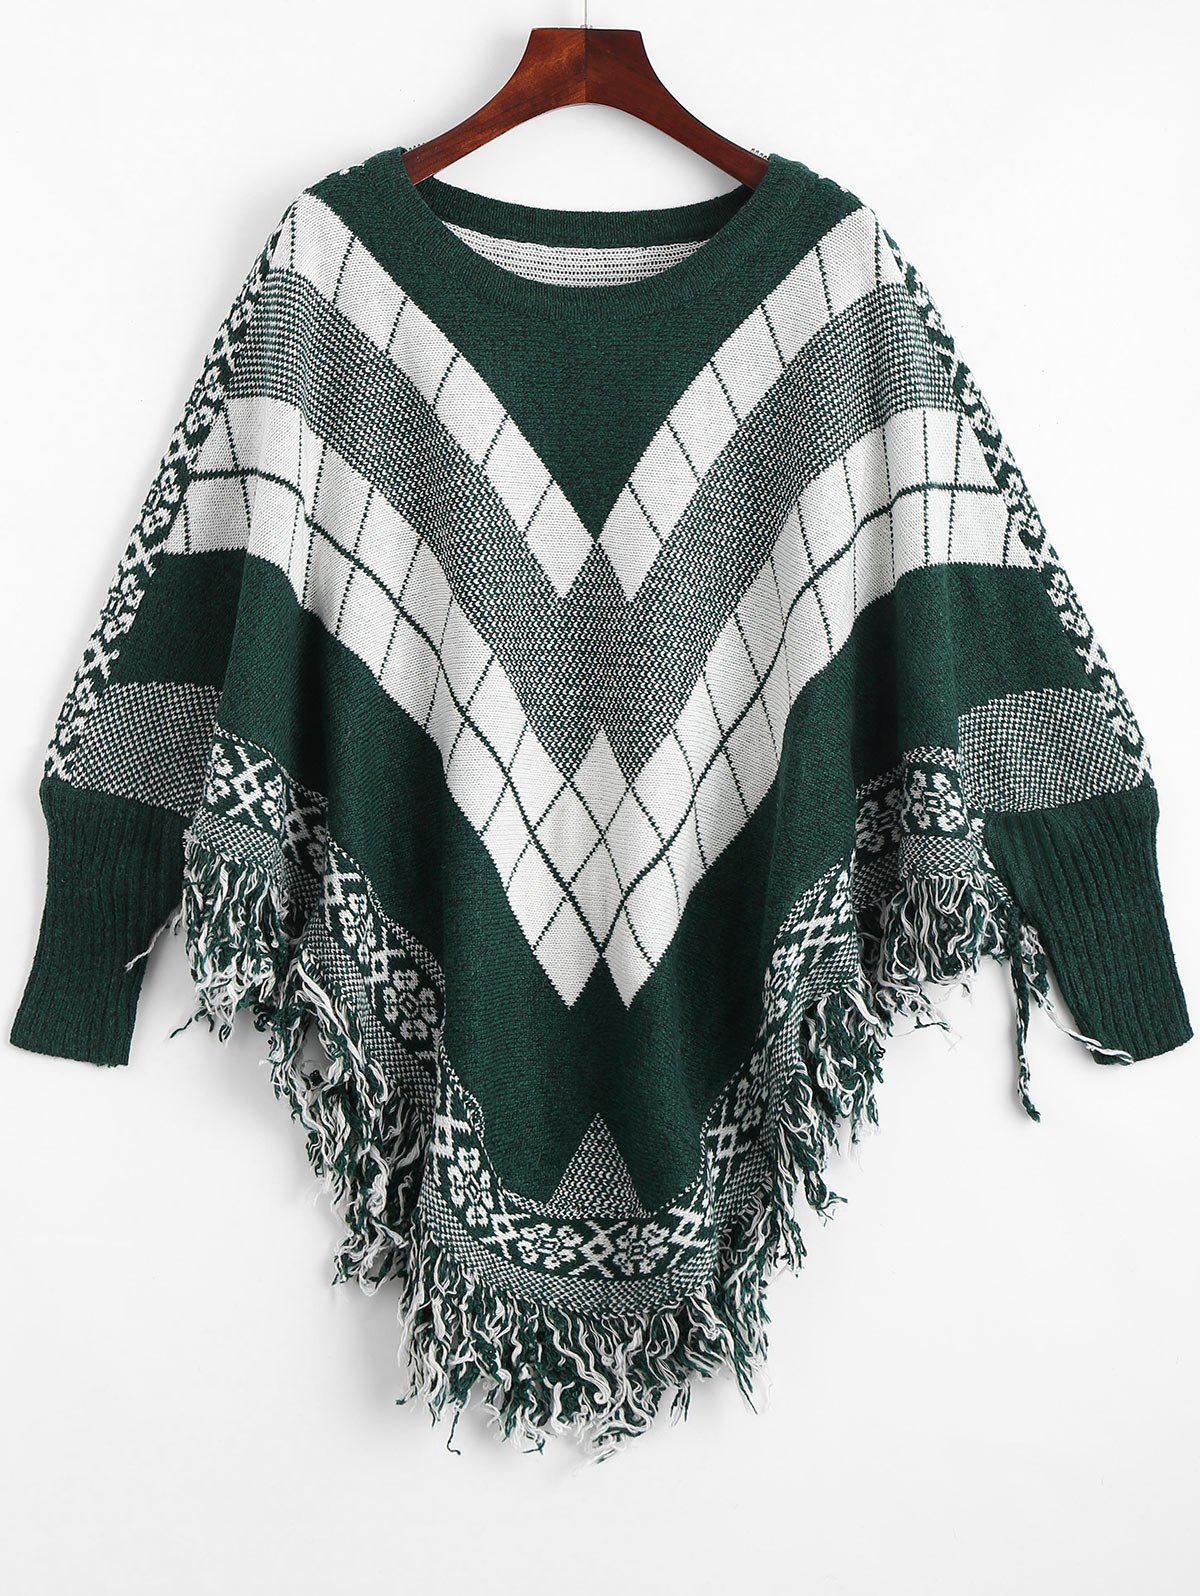 Fringed Geometric Poncho Plus Size SweaterWOMEN<br><br>Size: ONE SIZE; Color: BLACKISH GREEN; Type: Pullovers; Material: Polyester,Spandex; Sleeve Length: Full; Collar: Round Neck; Style: Fashion; Season: Fall; Pattern Type: Geometric; Weight: 0.5500kg; Package Contents: 1 x Sweater;